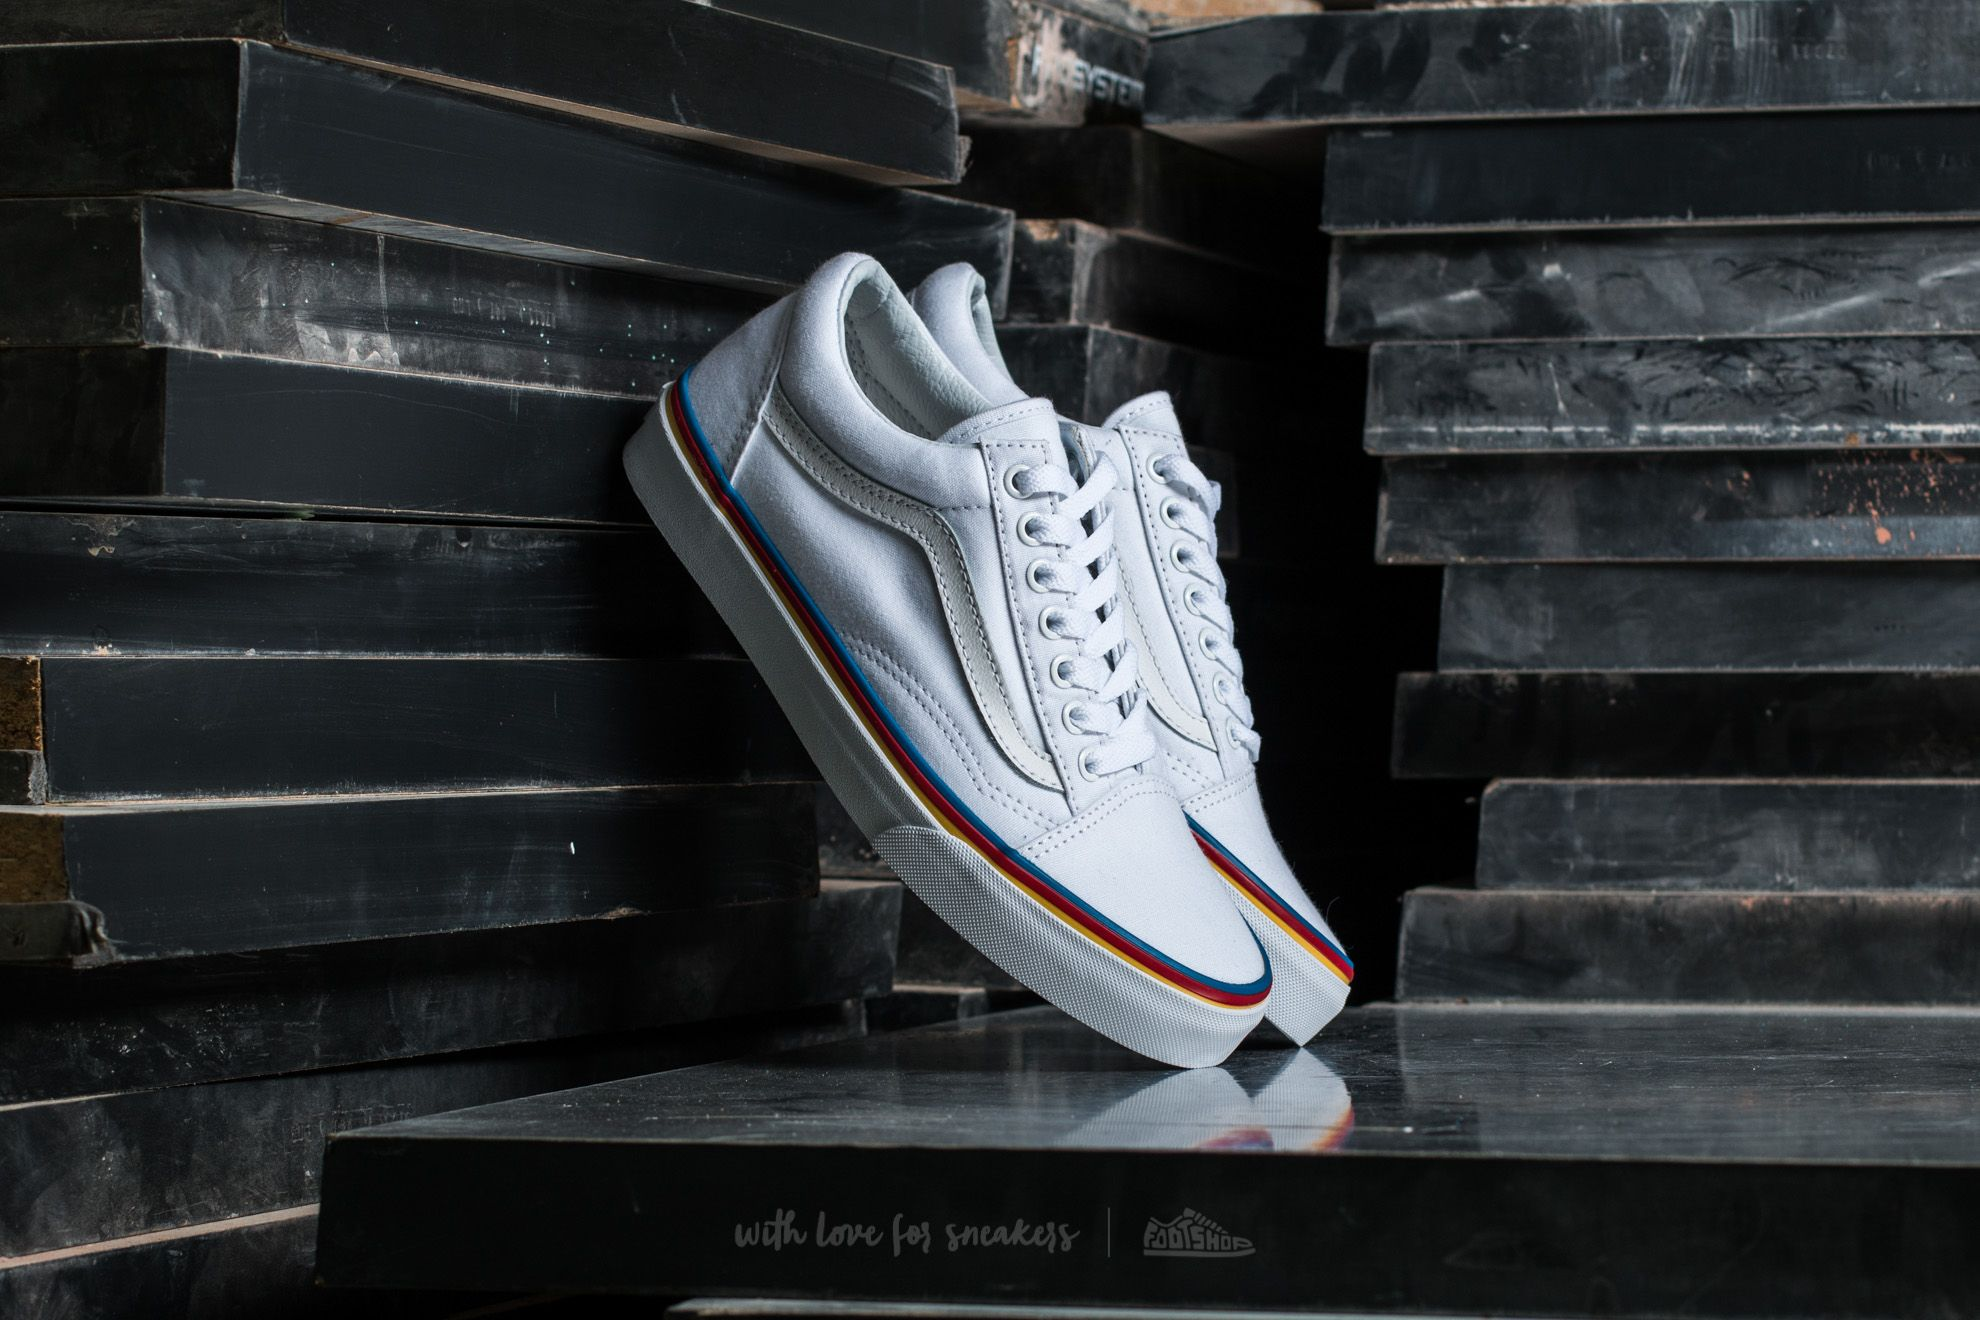 d63b9f5c21 Vans Old Skool Rainbow Foxing True White